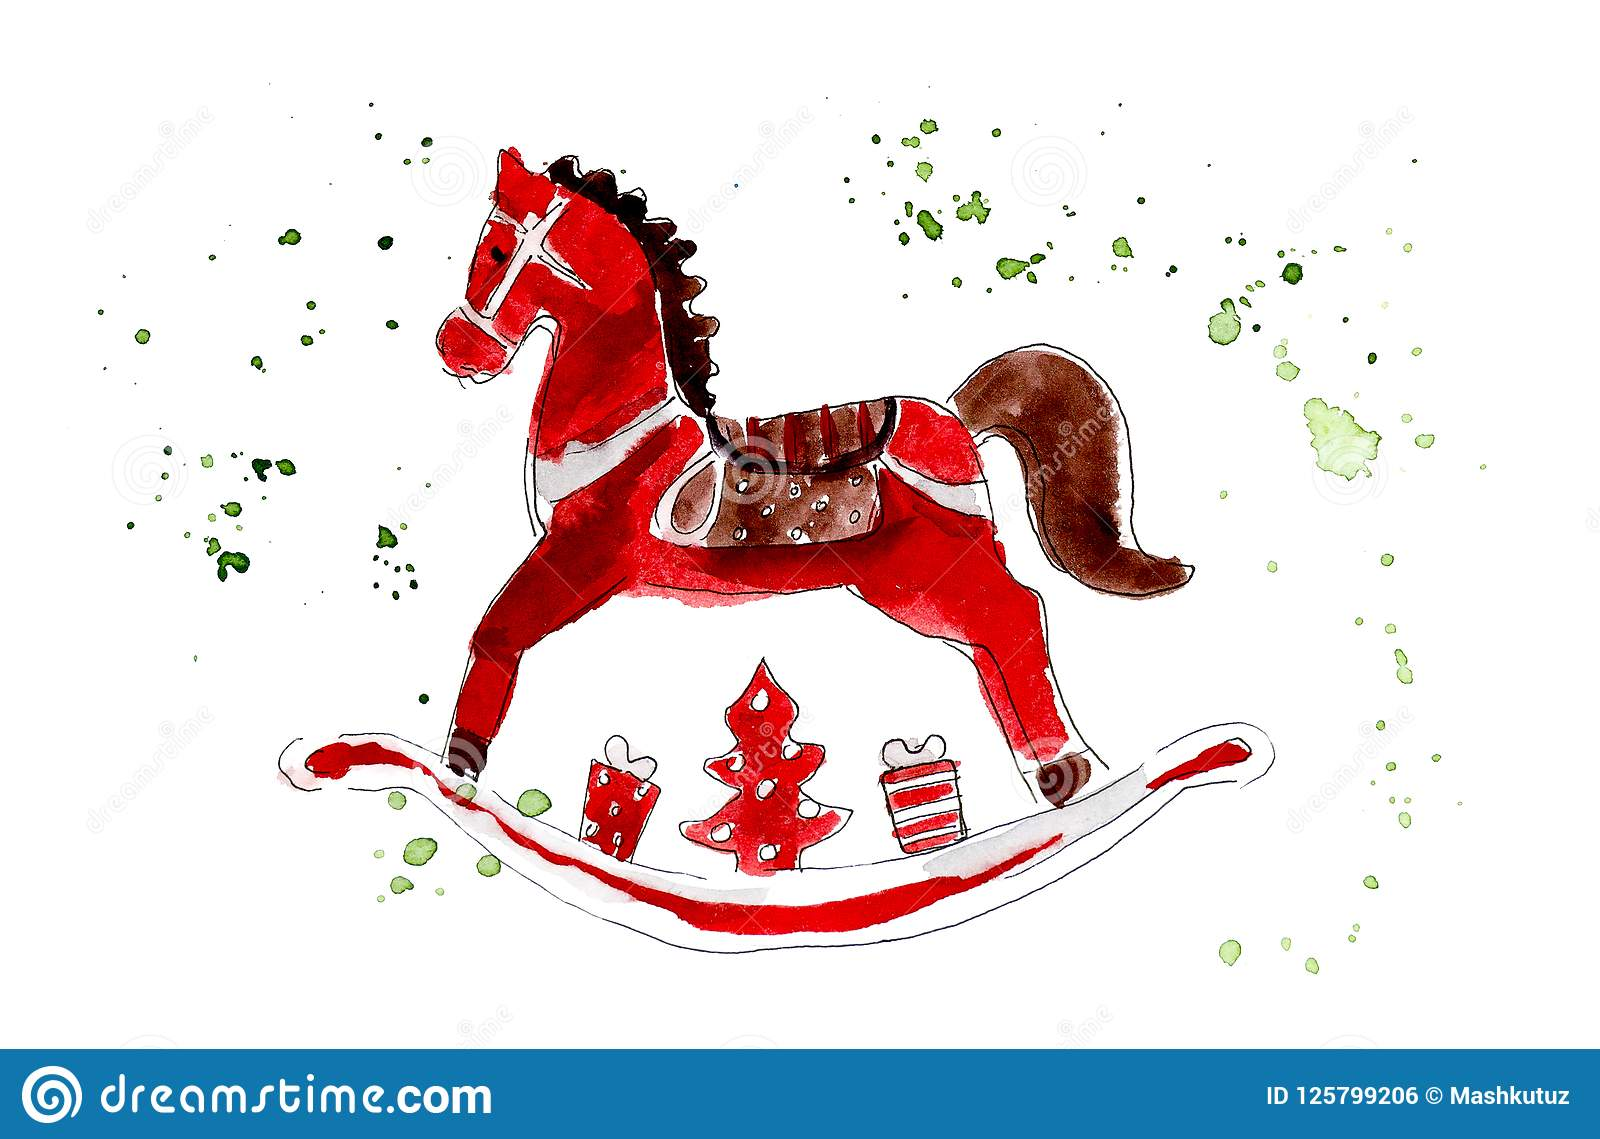 Christmas Toys Wooden Red Horse Watercolor Hand Drawing Illustration Stock Illustration Illustration Of Sketch Retro 125799206